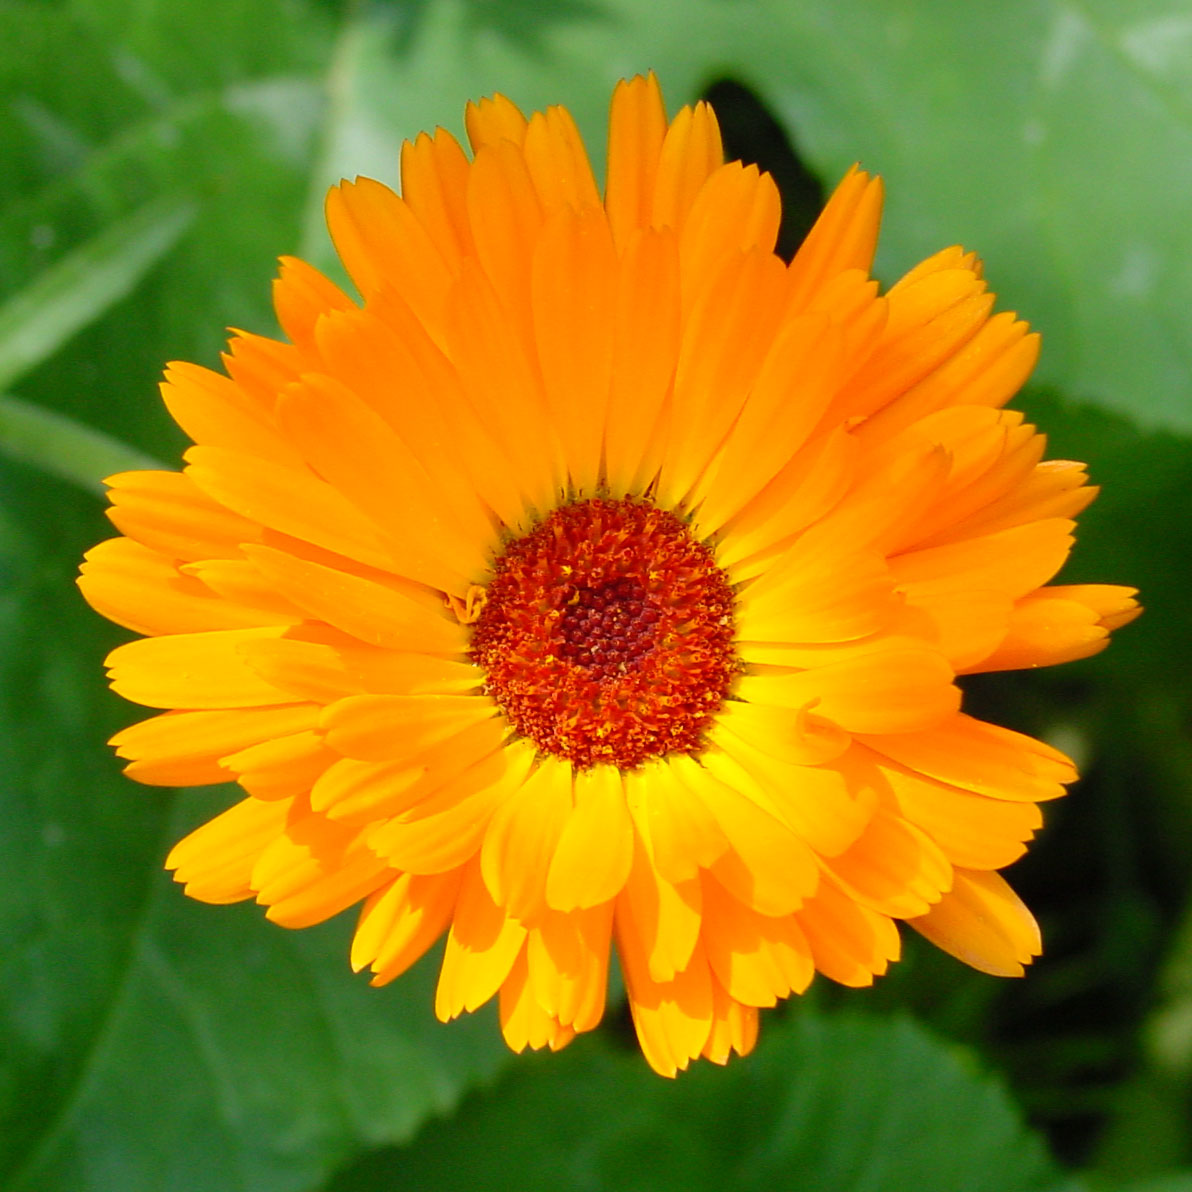 Sofia s Secrets to Health and Wellness Herb Spotlight Calendula cal